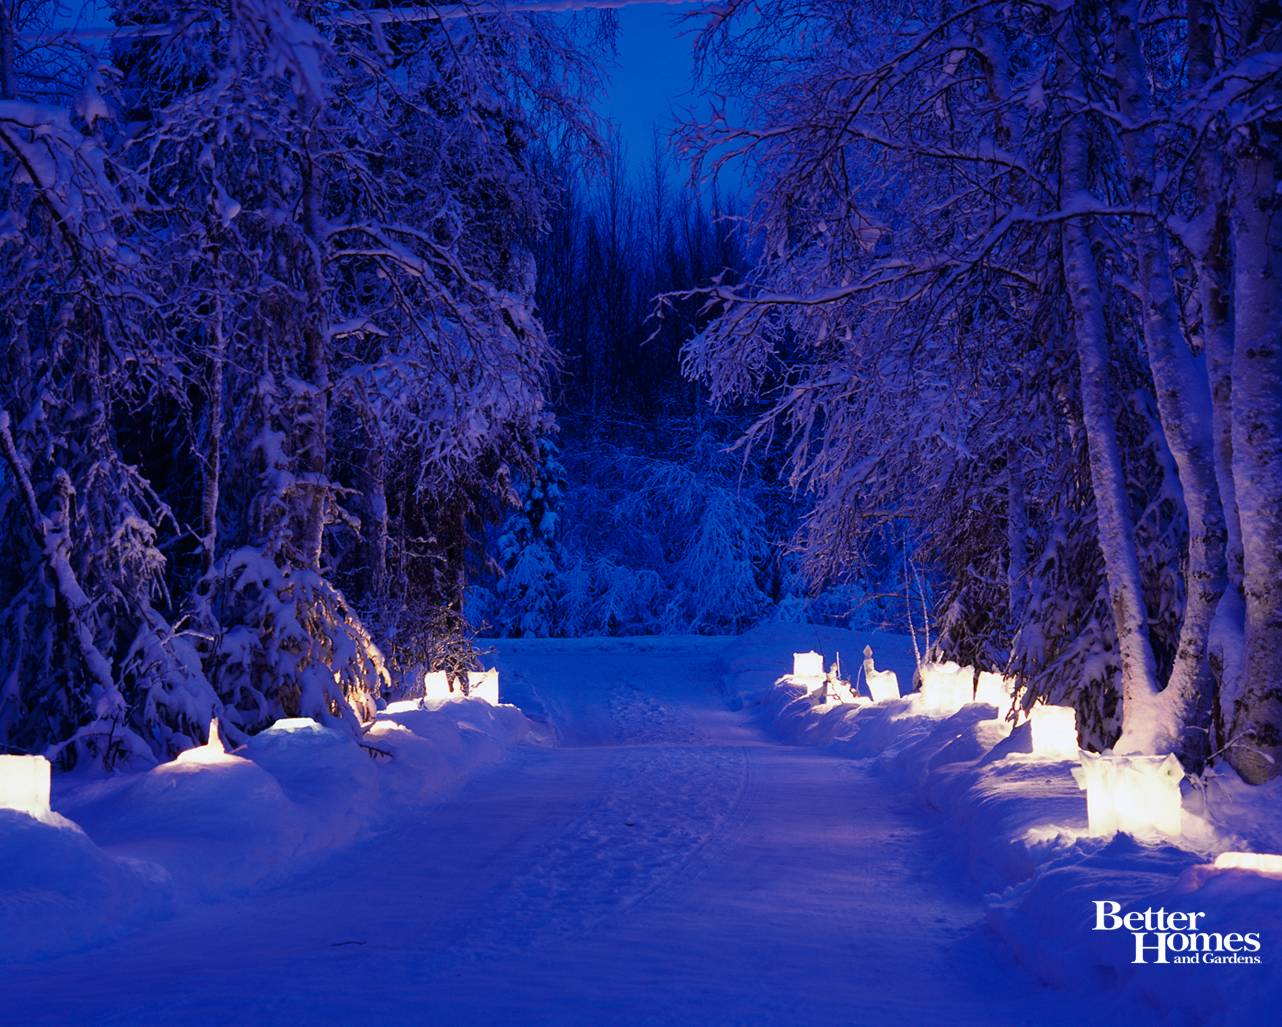 Winter Backgrounds For Computer - Wallpaper Cave